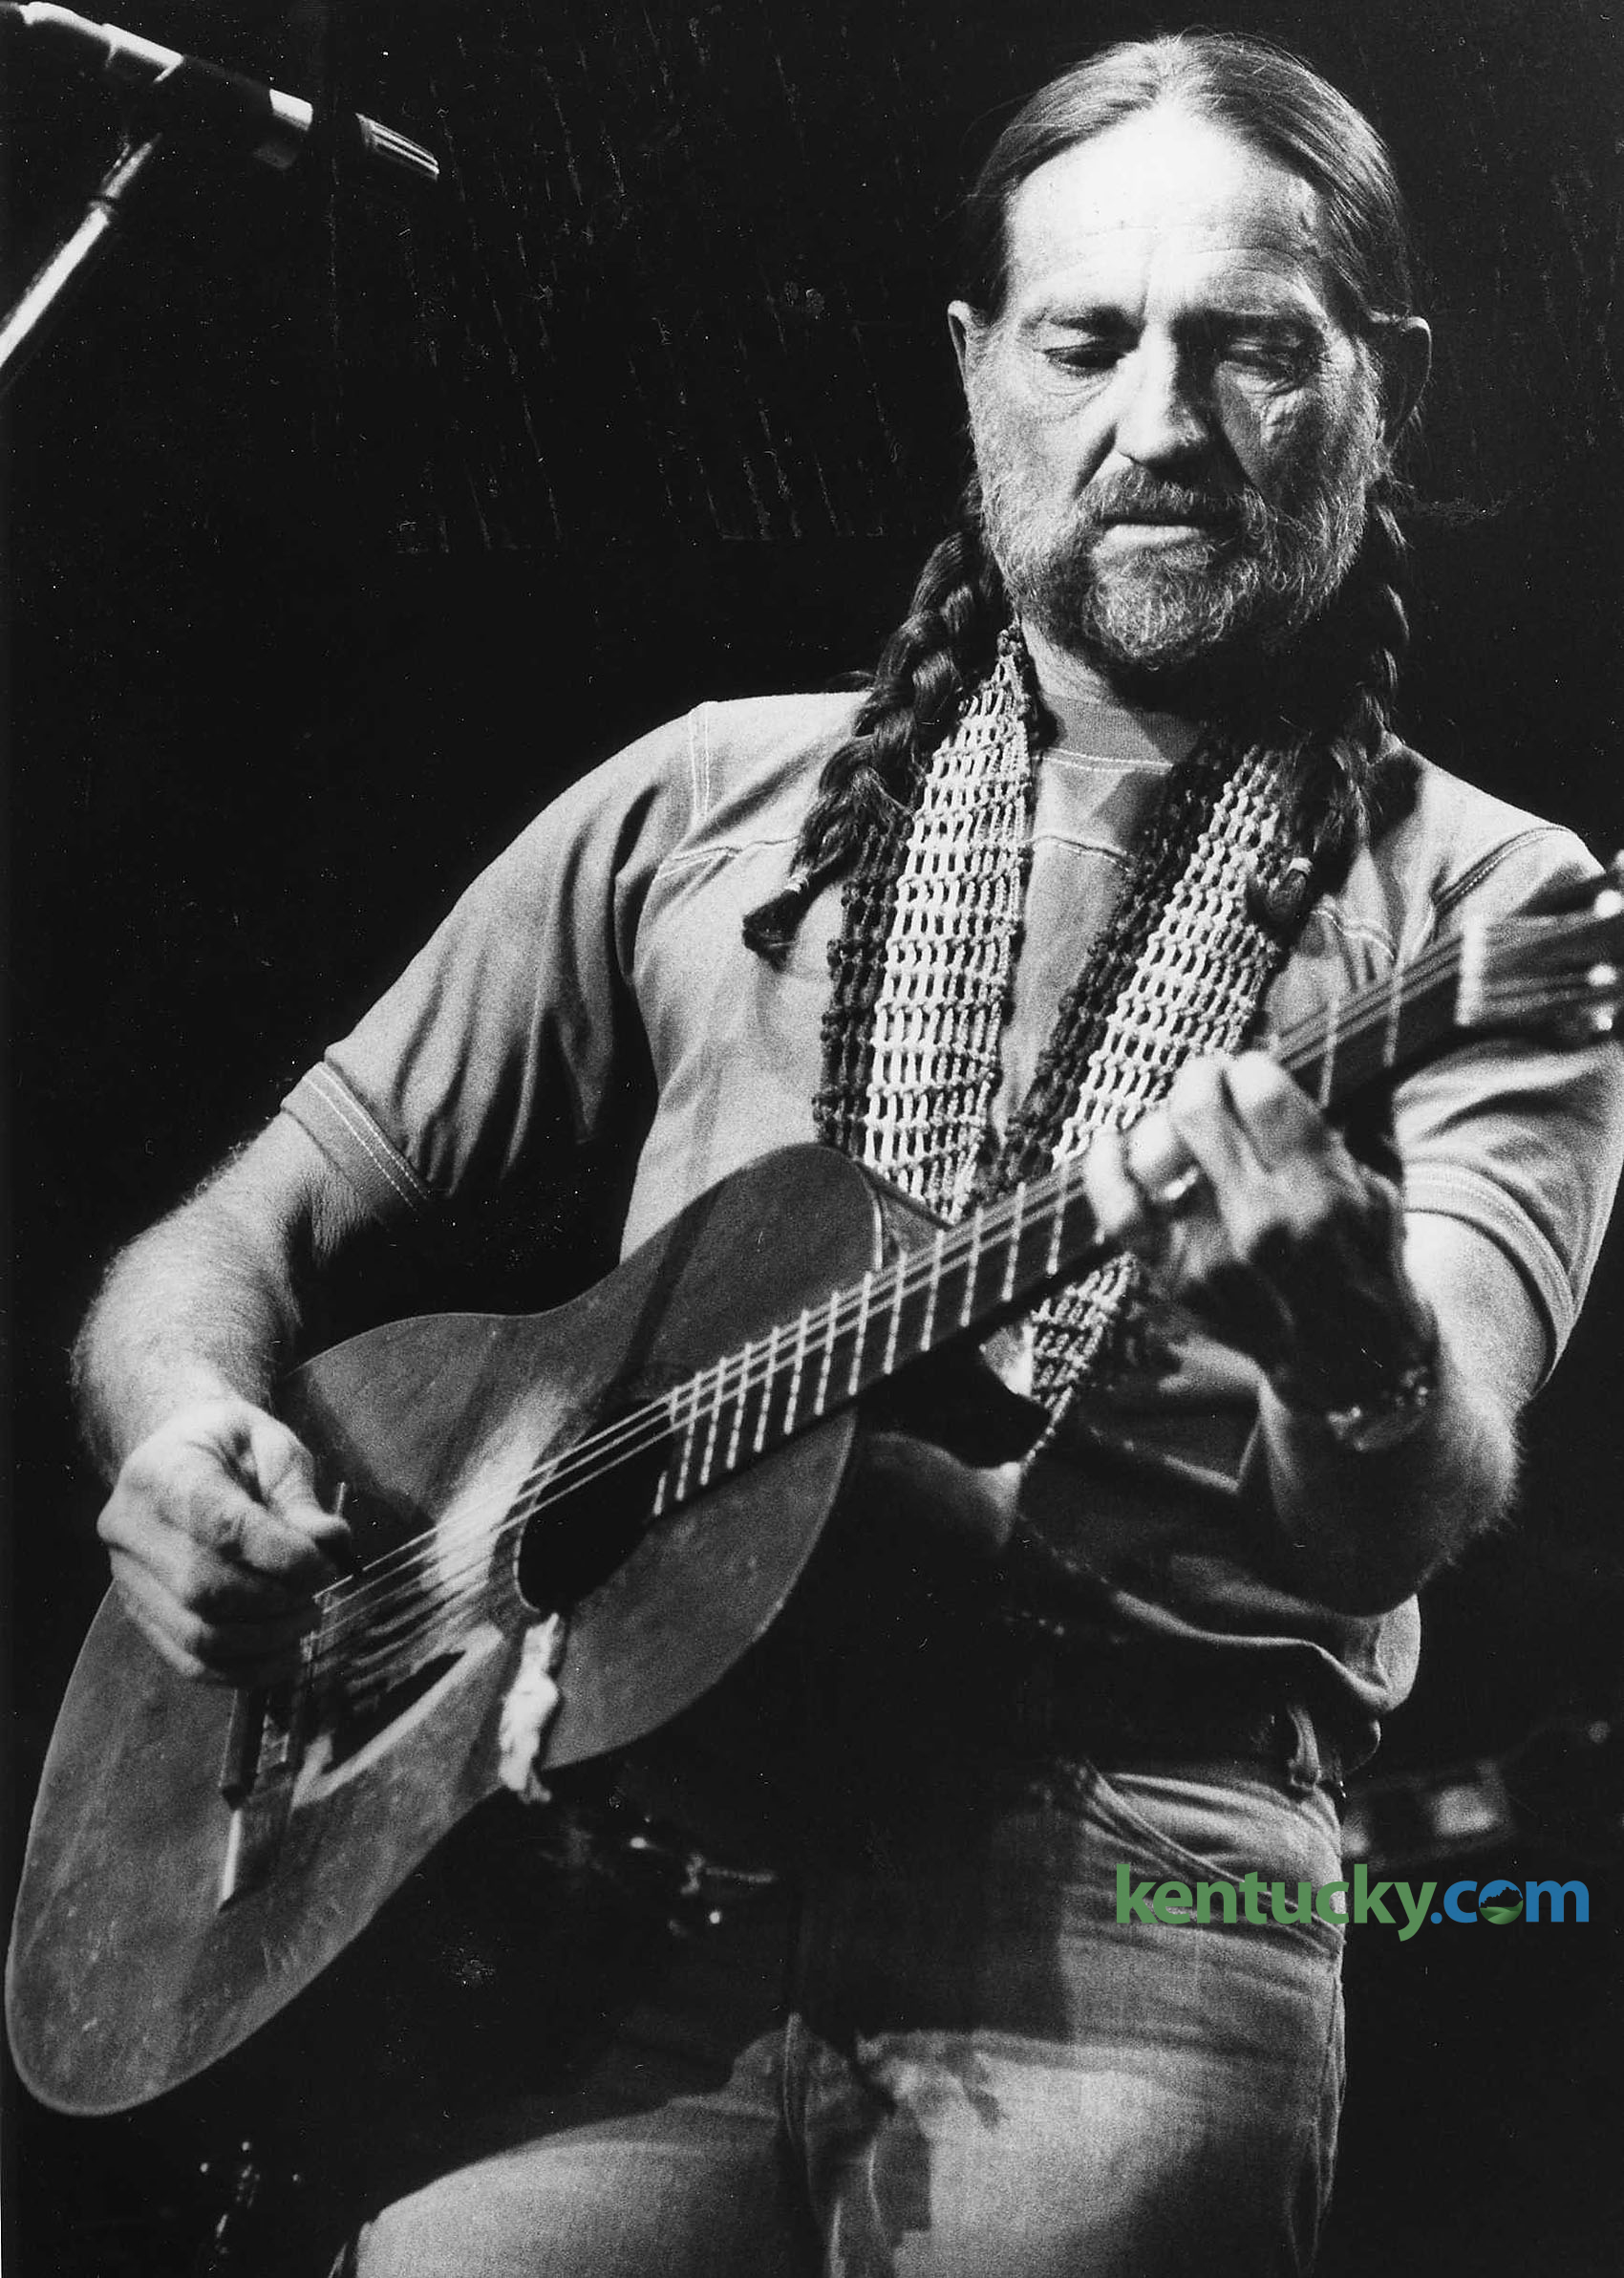 Willie Nelson At Rupp Arena 1979 Kentucky Photo Archive